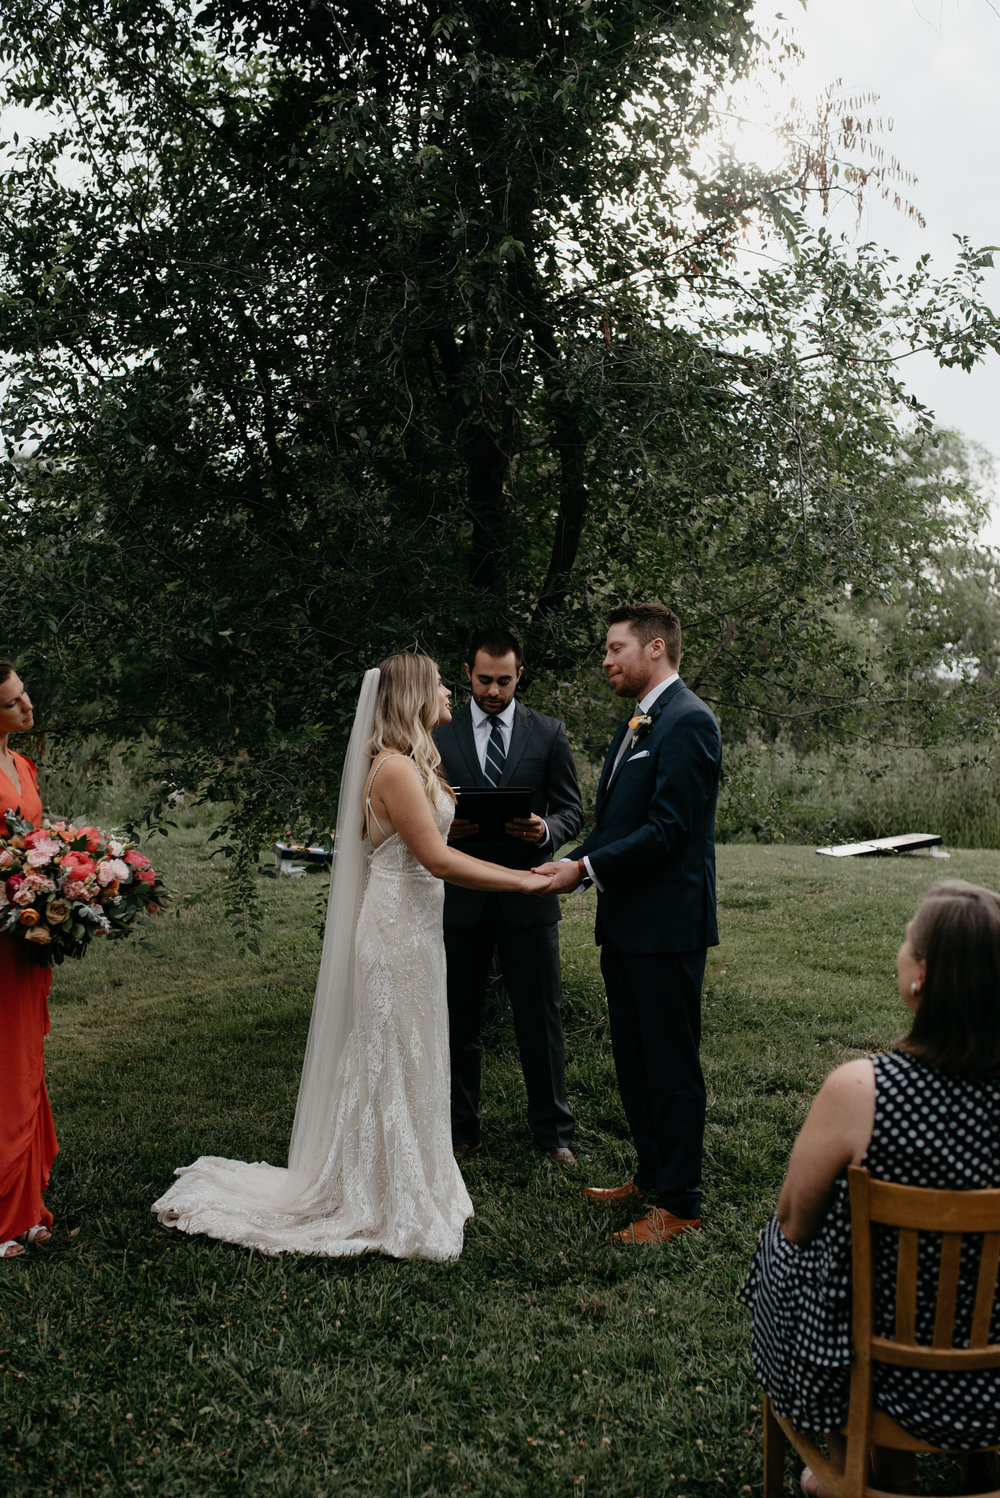 Three Leaf Farm wedding ceremony in Boulder, Colorado. Colorado intimate wedding and elopement photographer. Boulder rustic farm wedding venue.